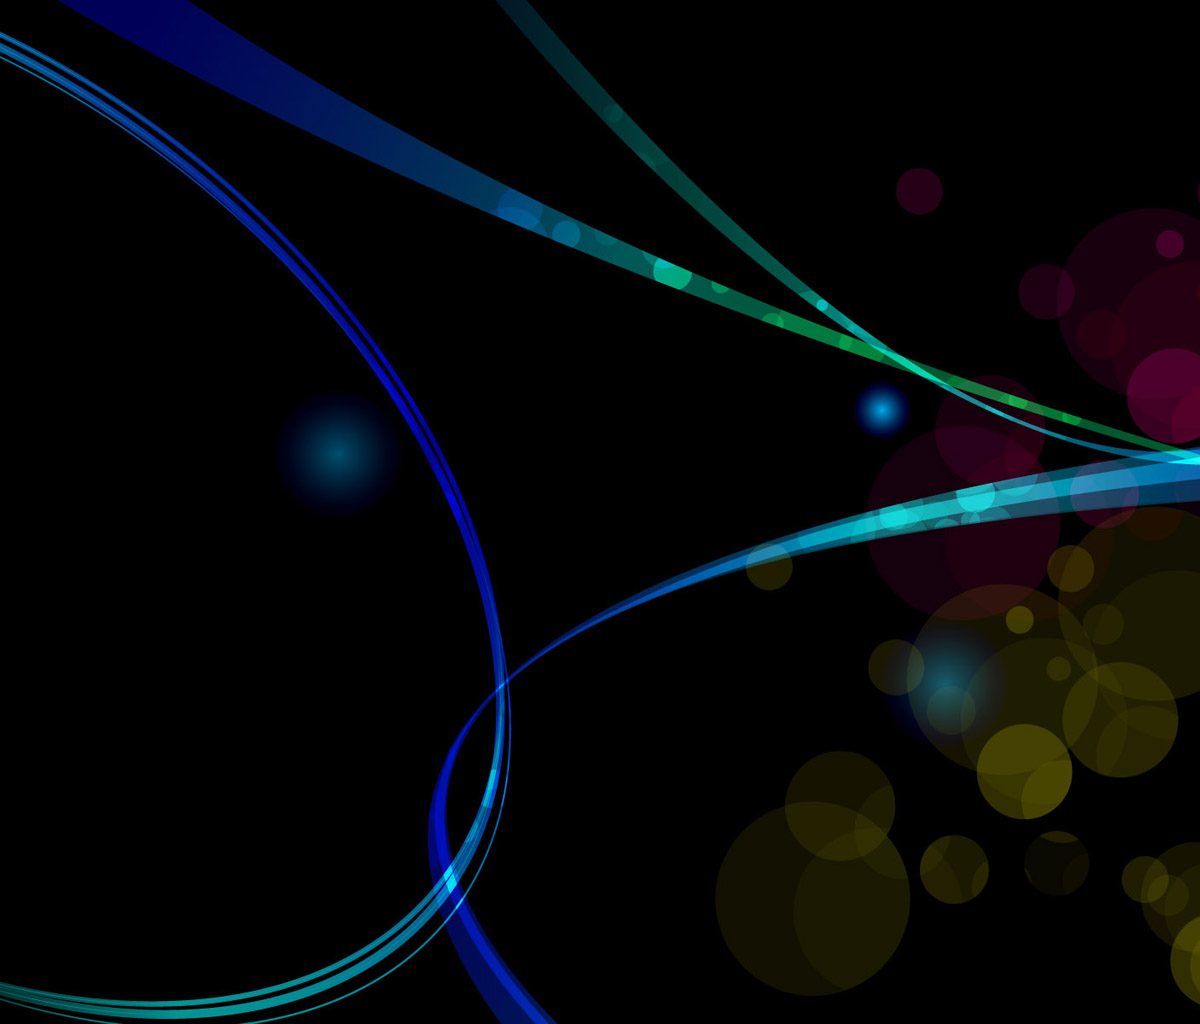 abstract wallpaper for tablet pc background tablet pc